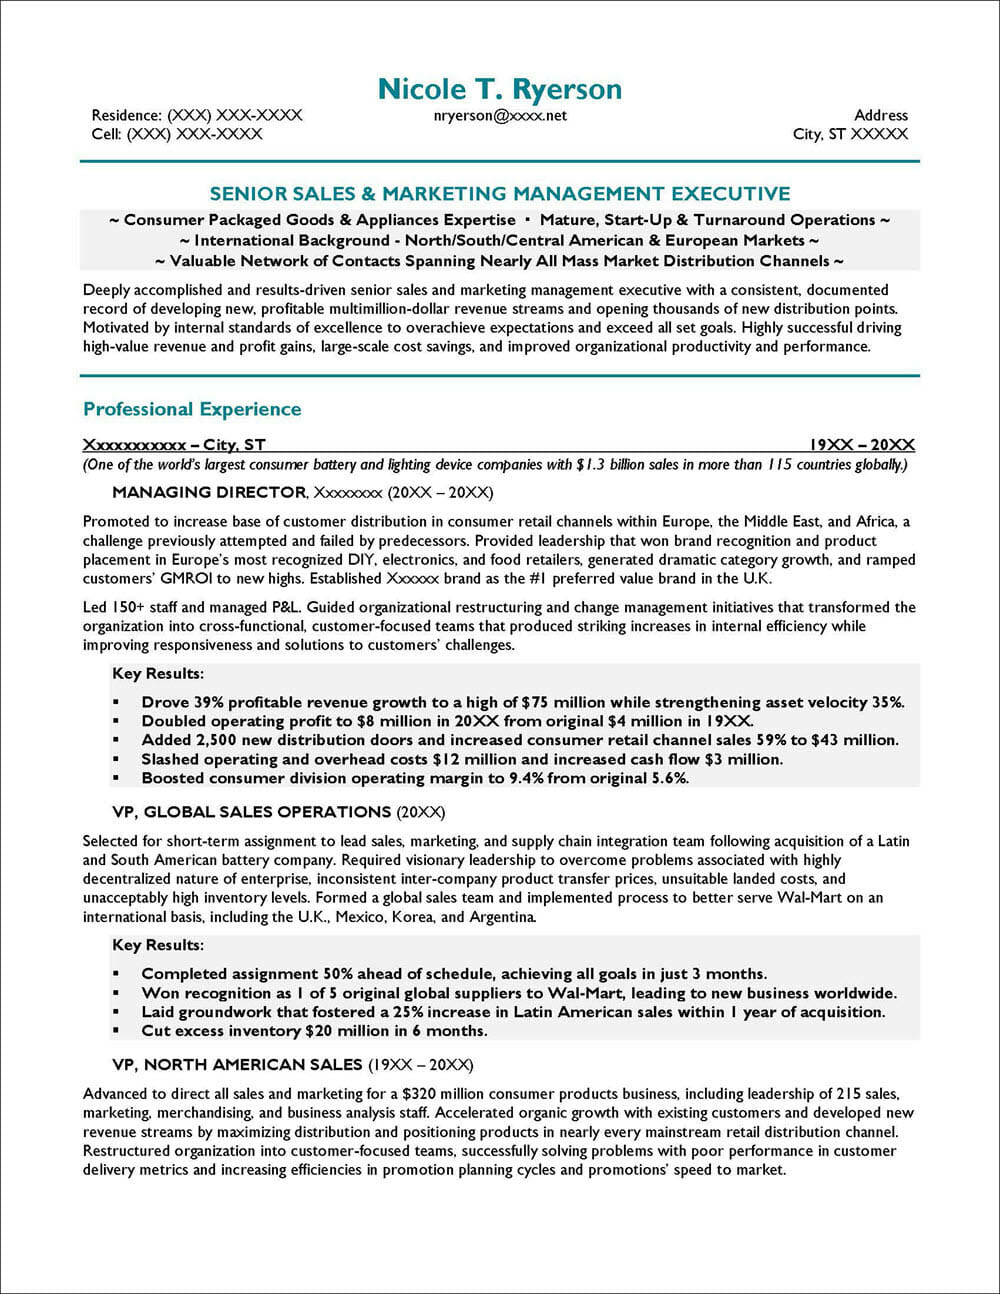 resume objective examples distinctive career services for manager example construction Resume Resume Objective For Manager